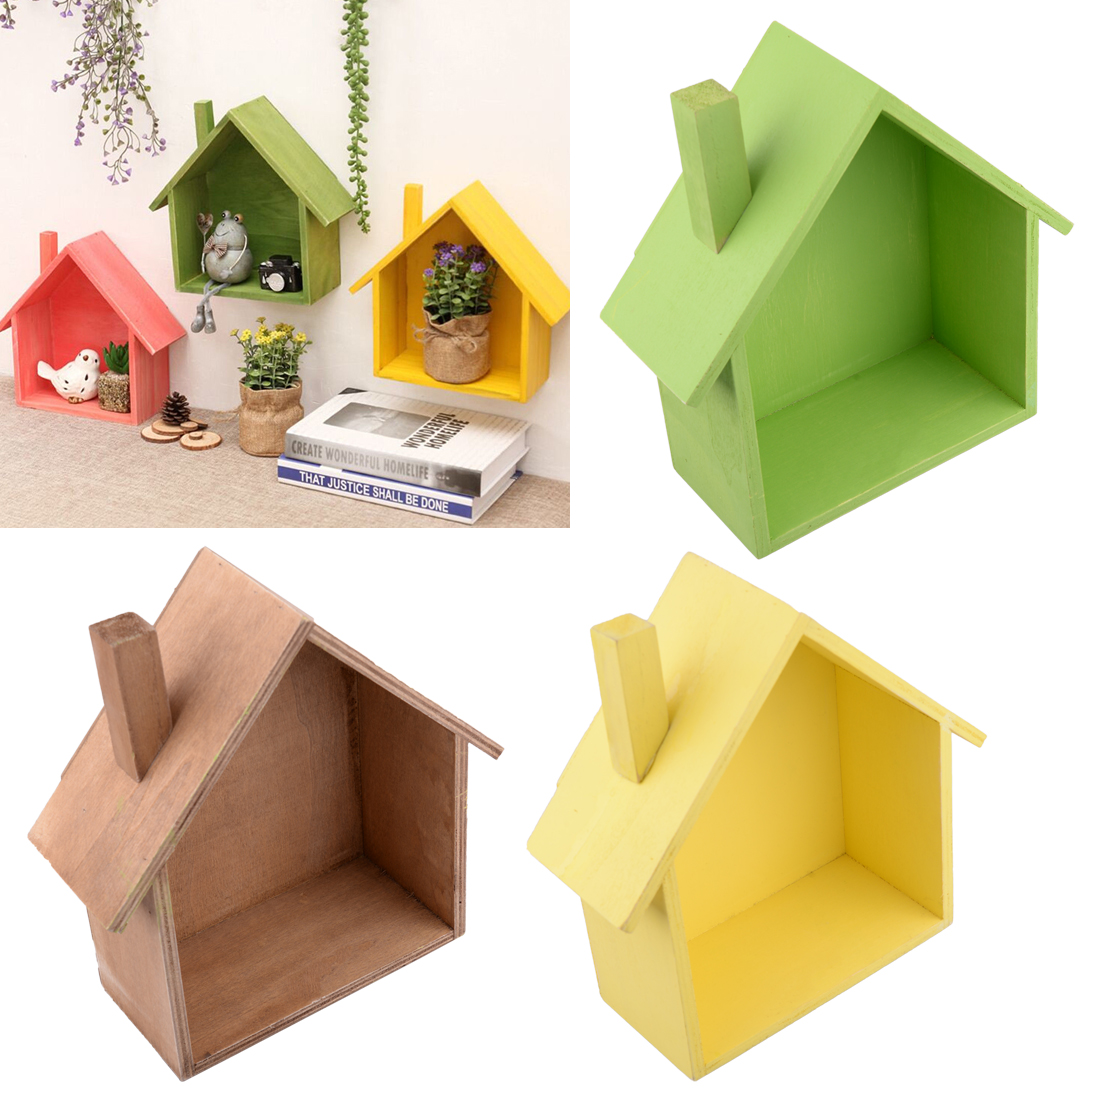 Living Room Wooden House Shaped Shelving Display Unit Wall Hanging ...